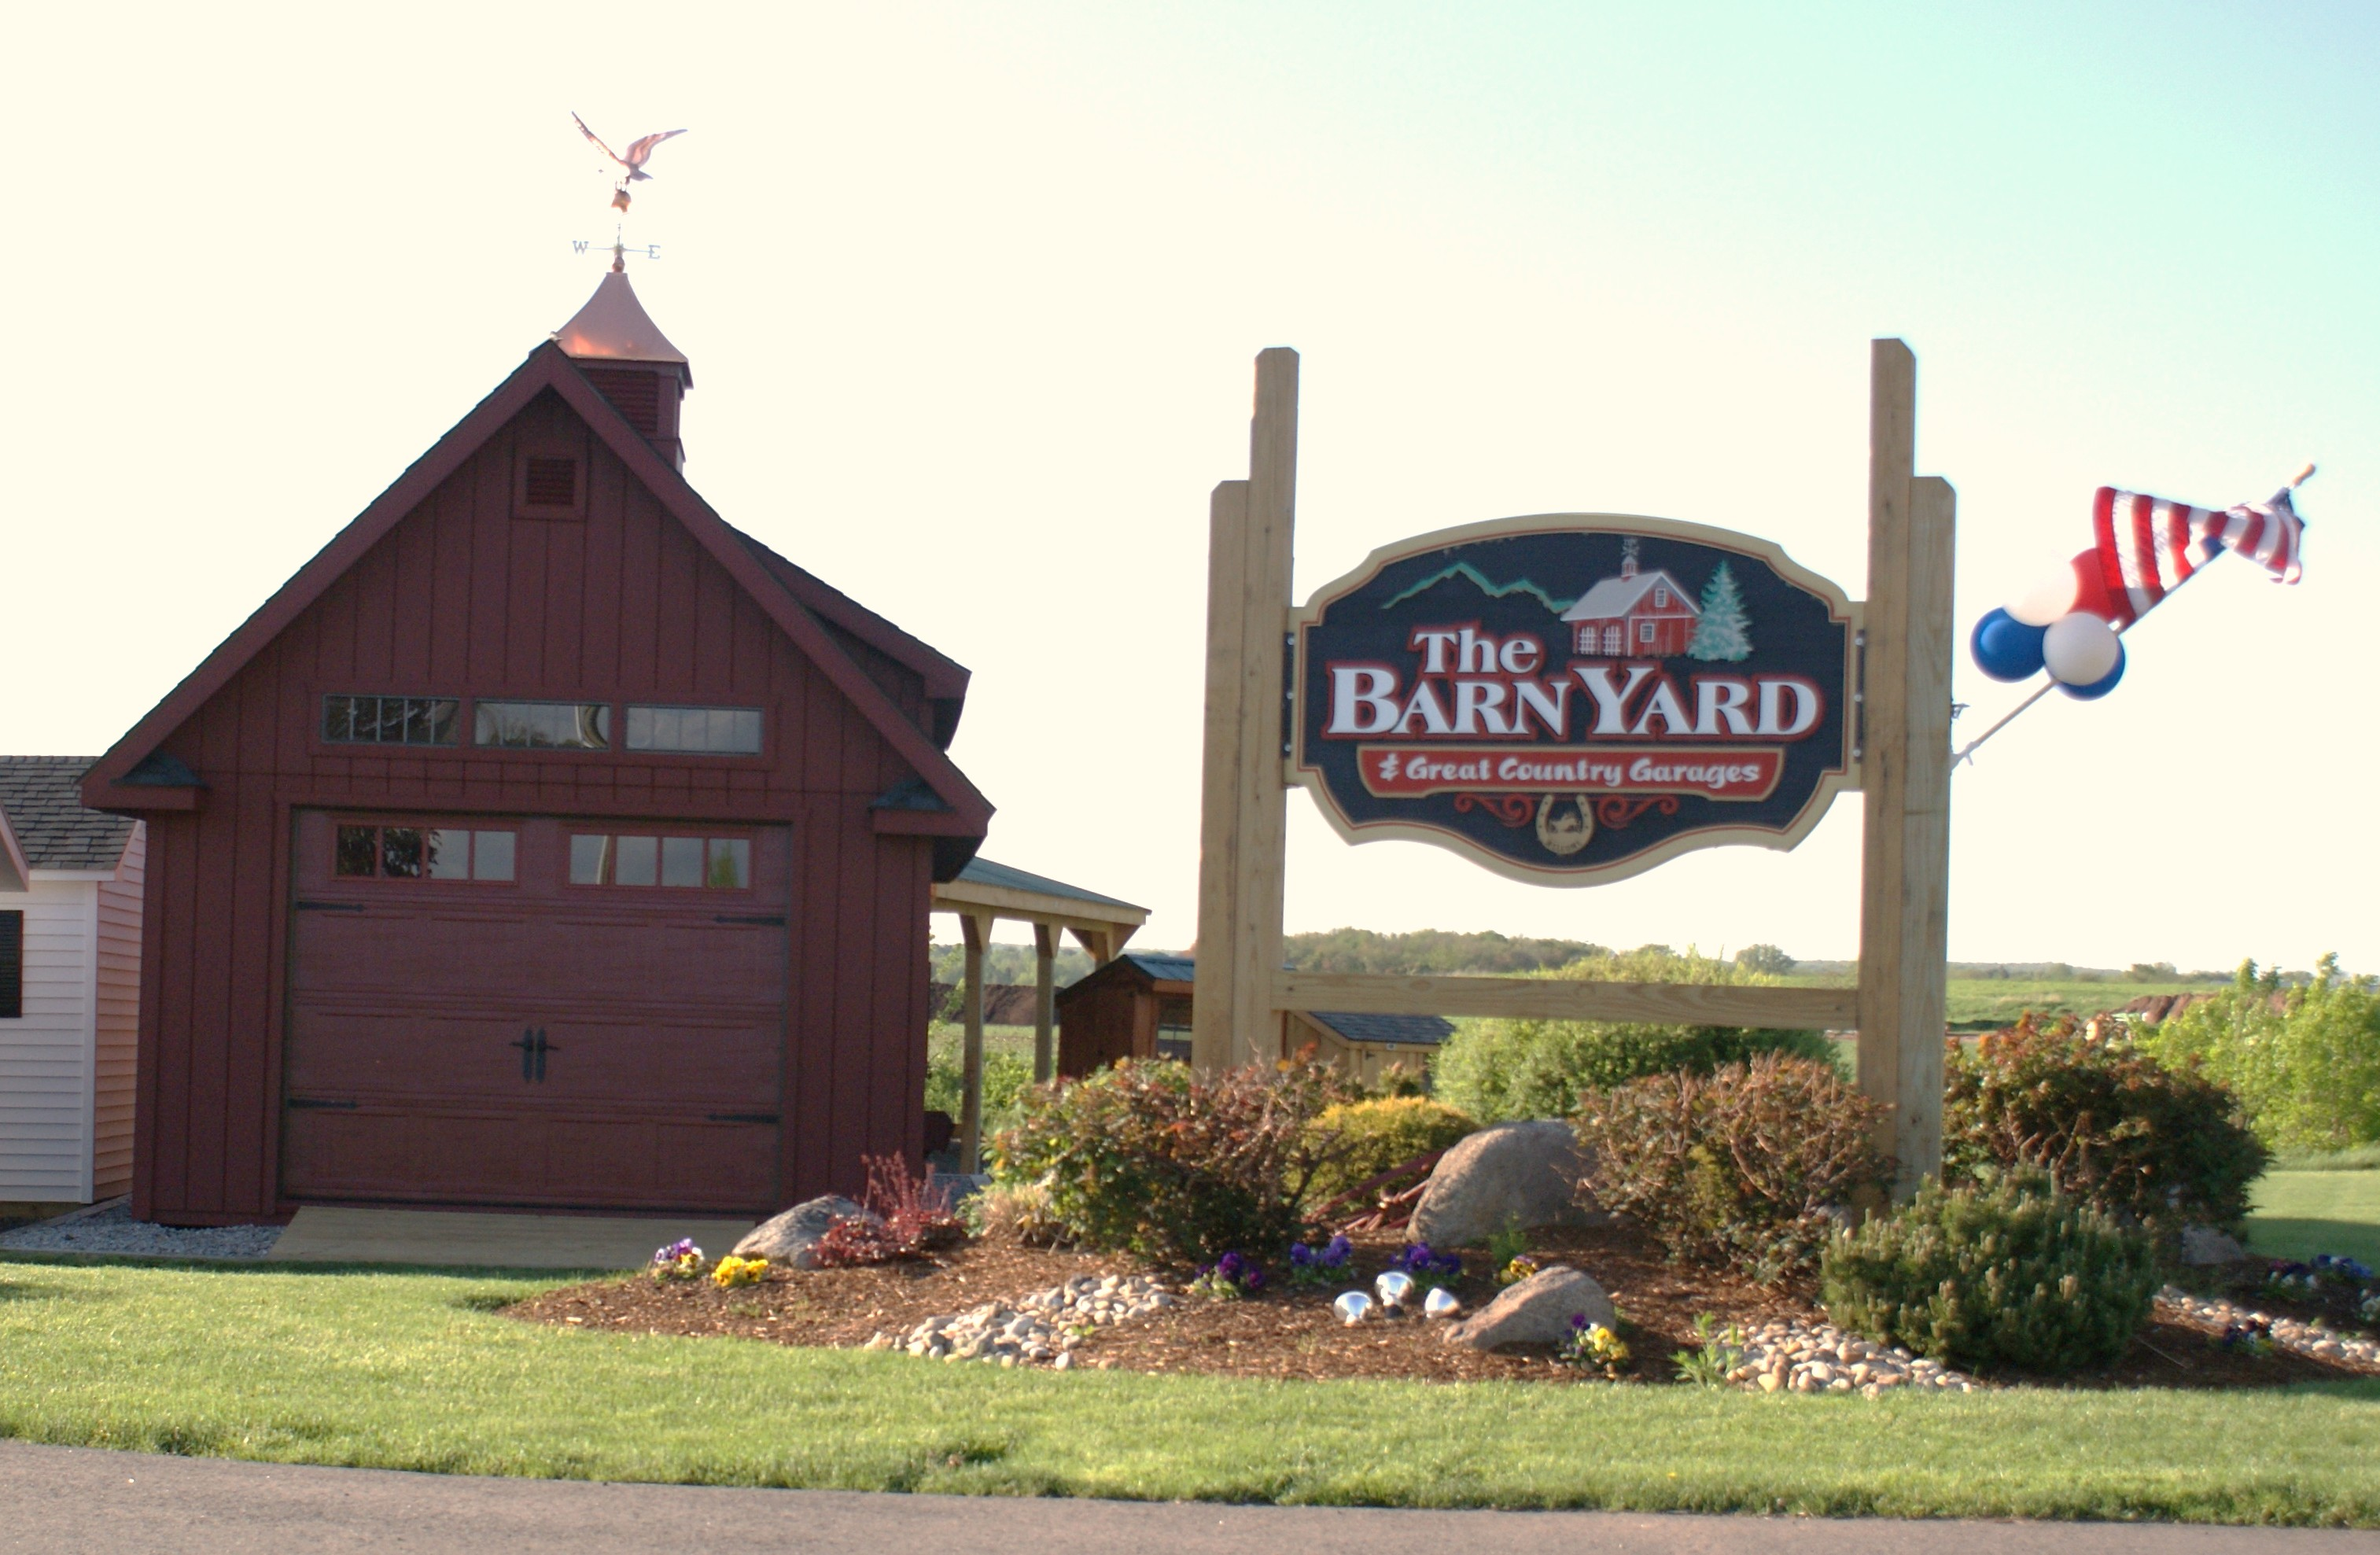 Directory Spotlight: The Barn Yard | Ellington, CT Patch